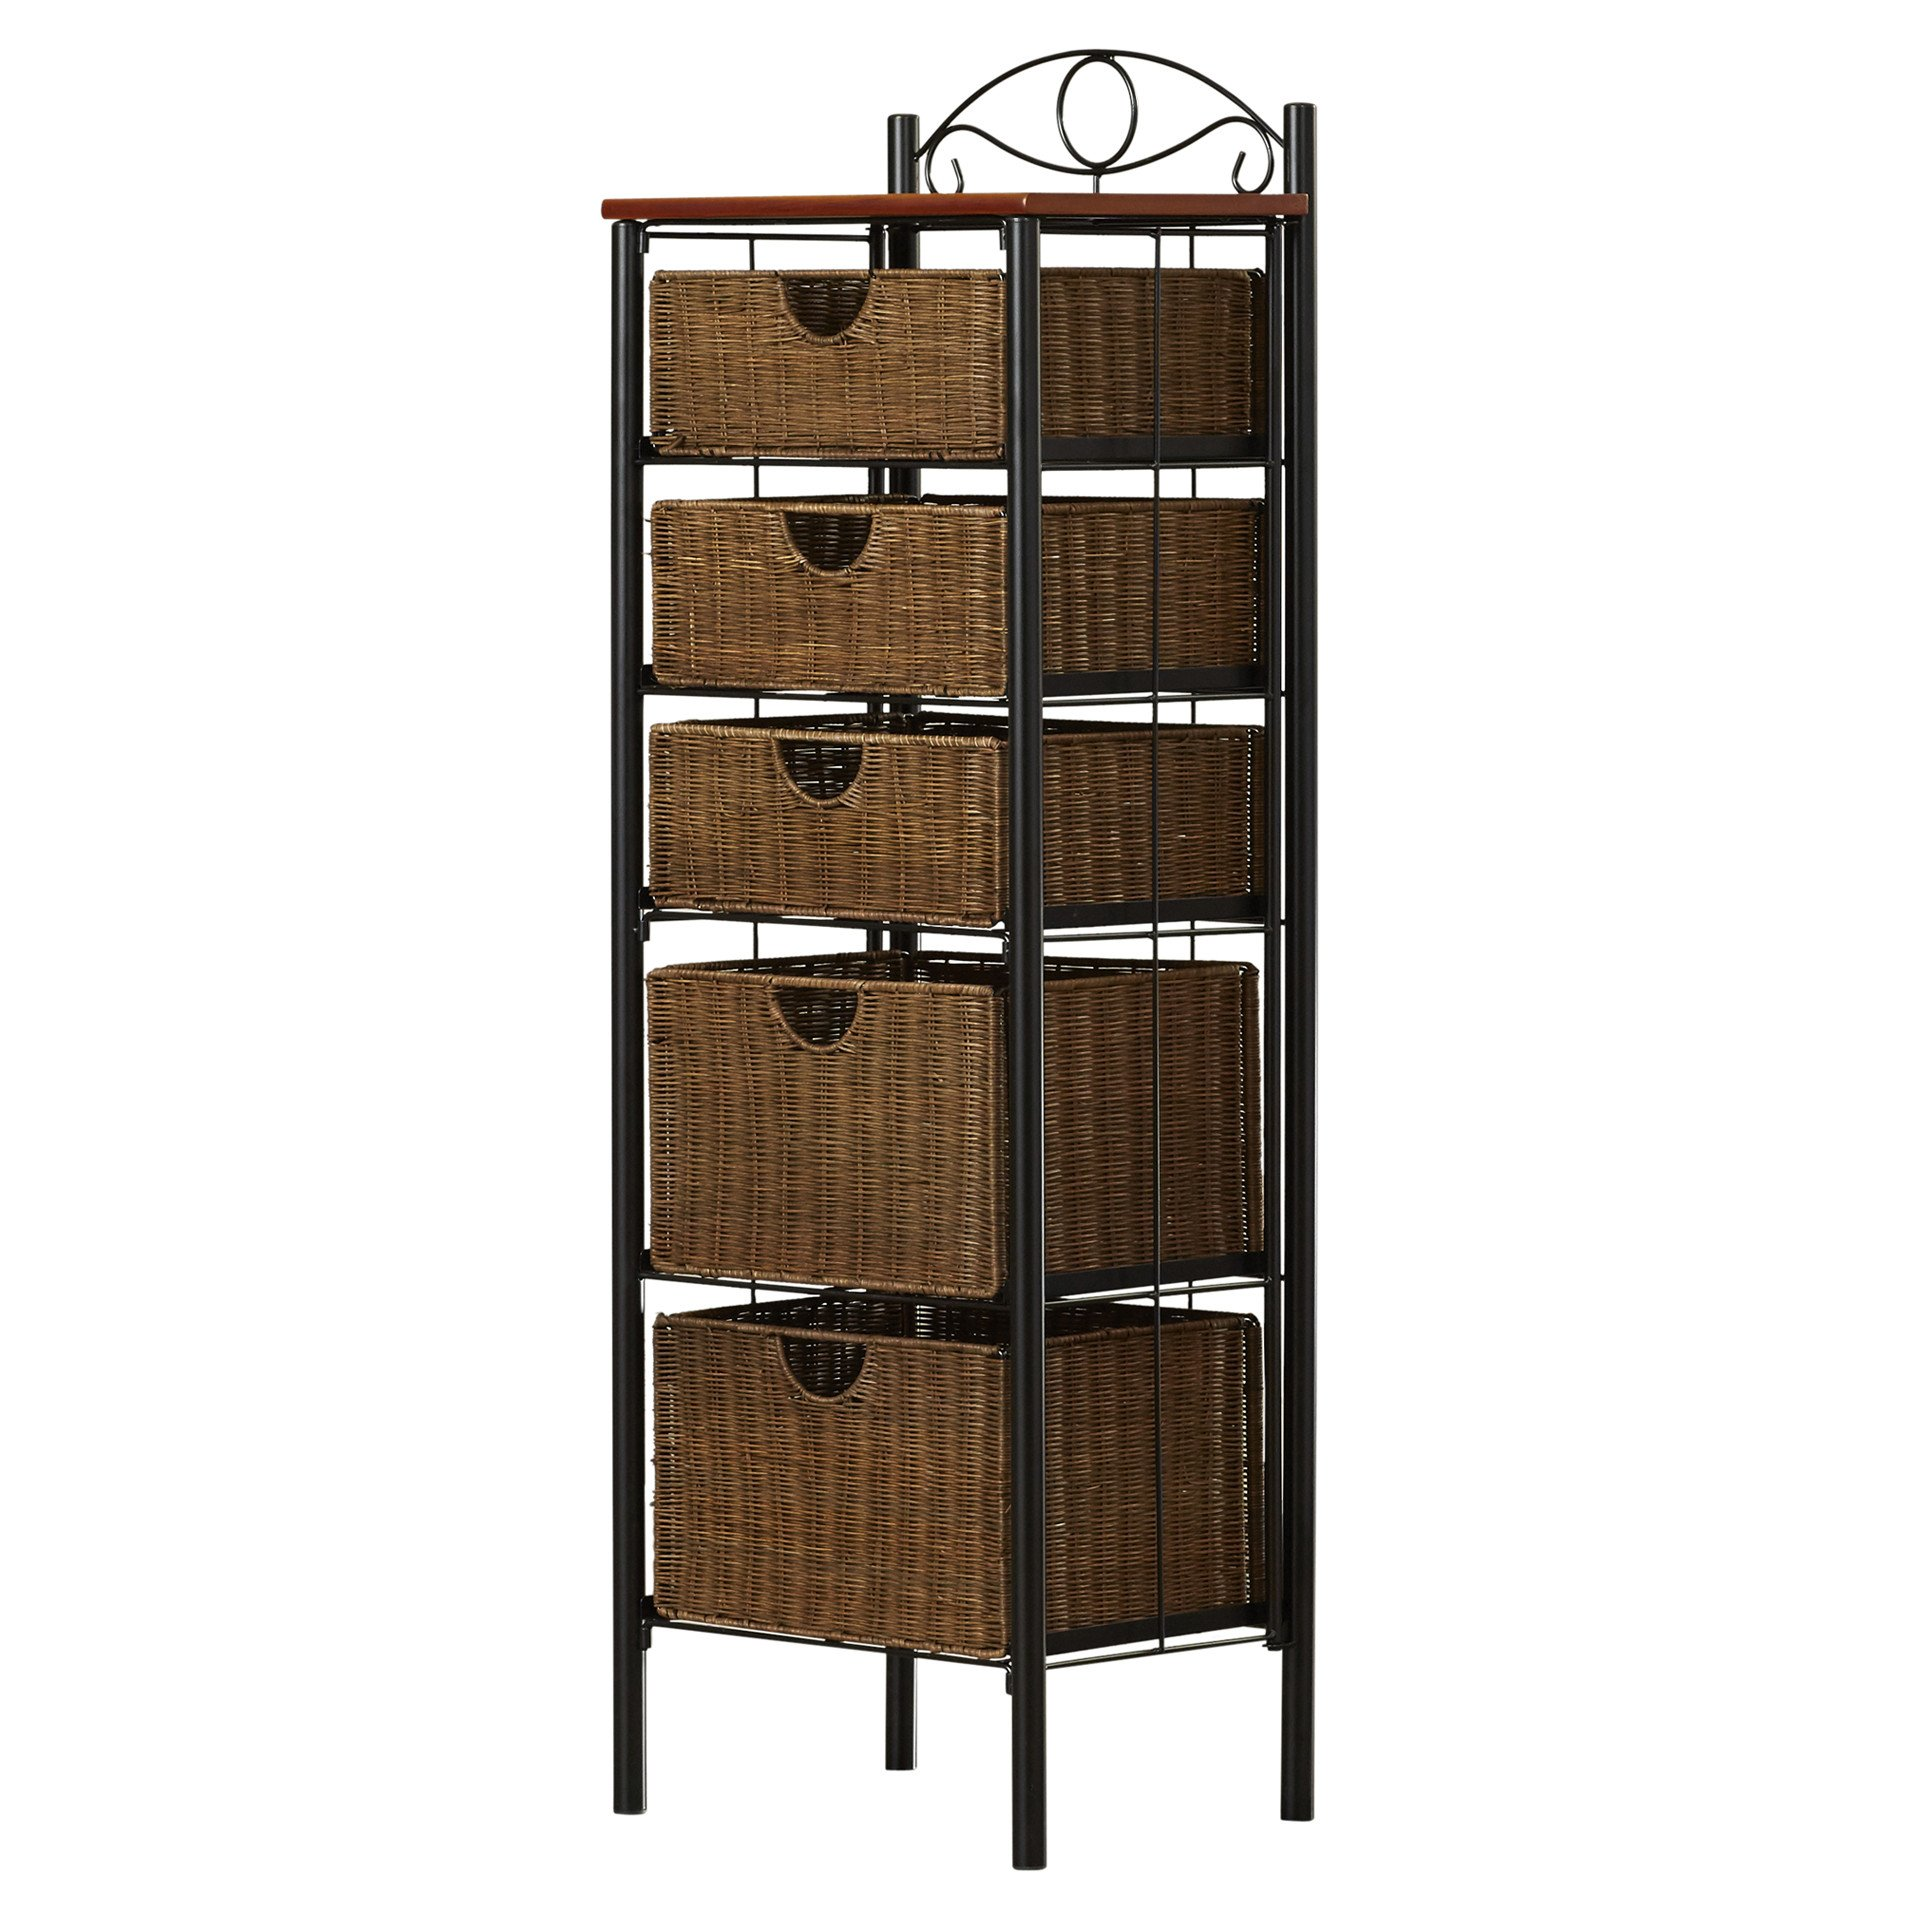 Darby Home Co - Caroleann Cabinet, Linen tower